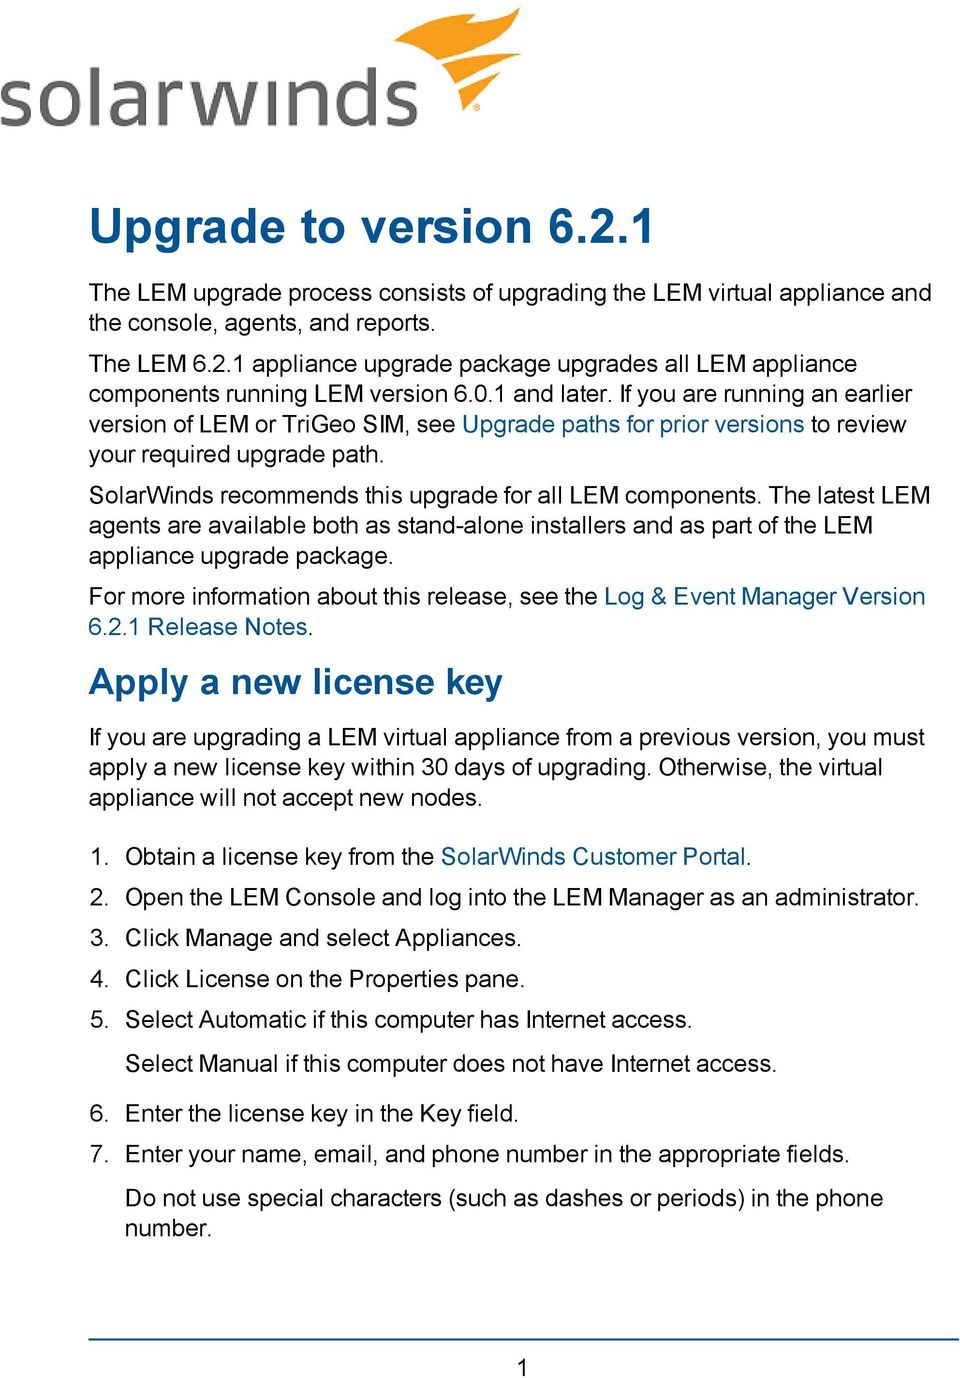 SolarWinds recommends this upgrade for all LEM components. The latest LEM agents are available both as stand-alone installers and as part of the LEM appliance upgrade package.